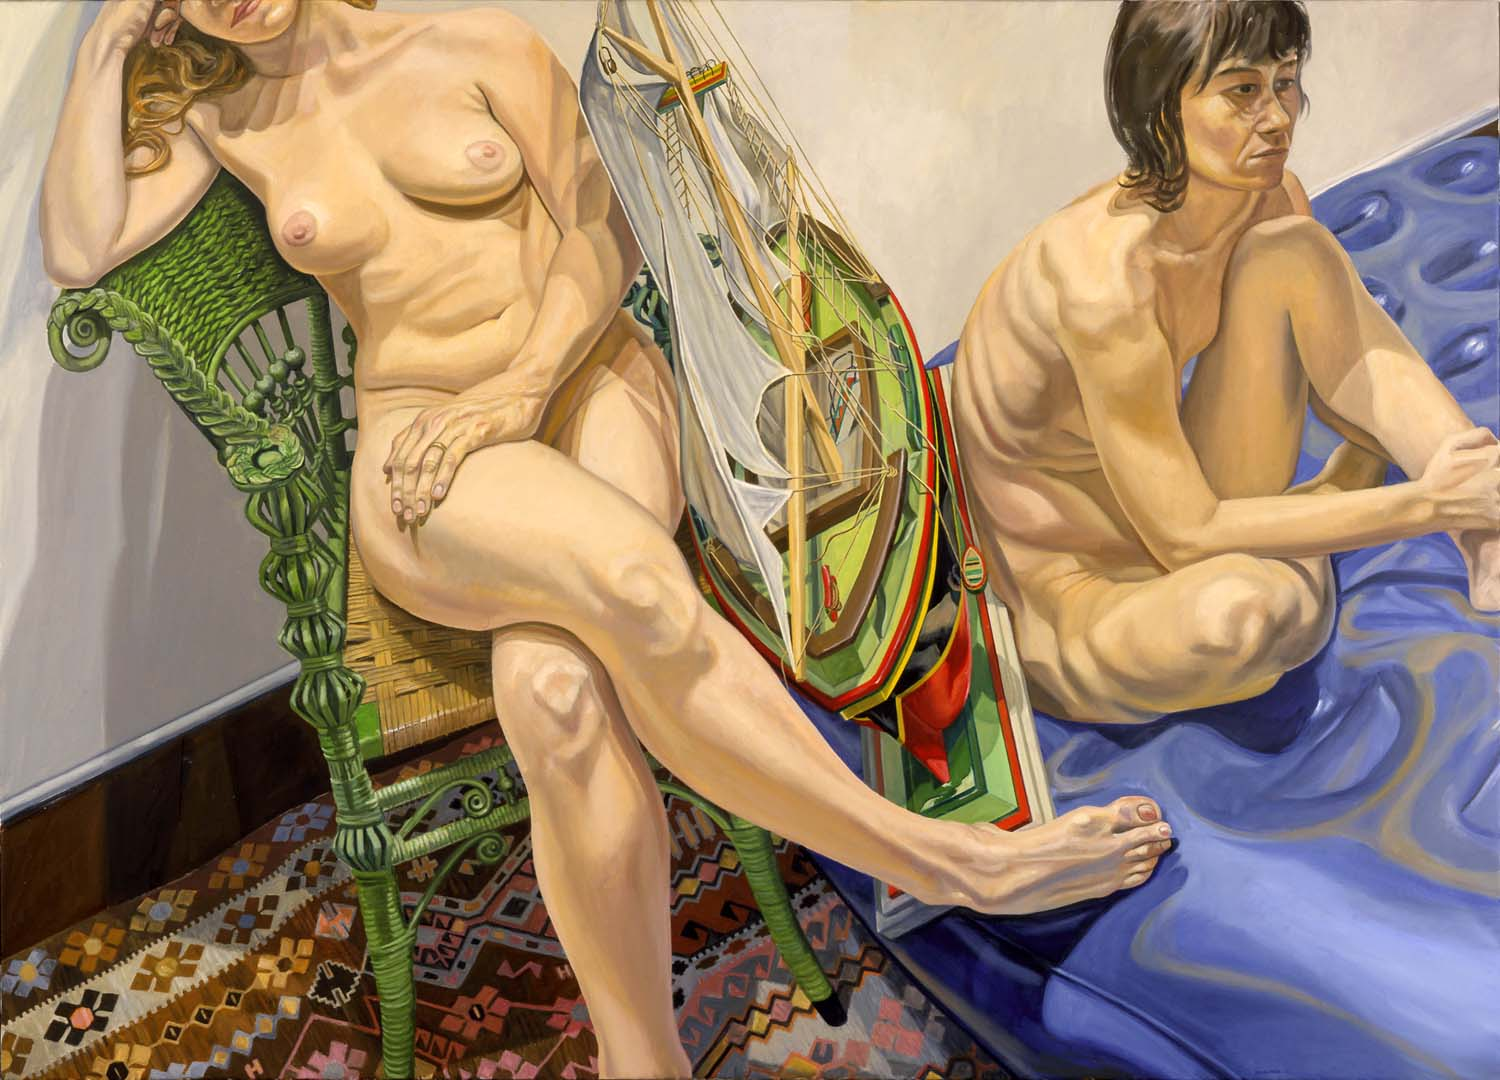 2006 Two Models with Air Mattress & Model Sail Boat Oil on Canvas Dimensions Unknown